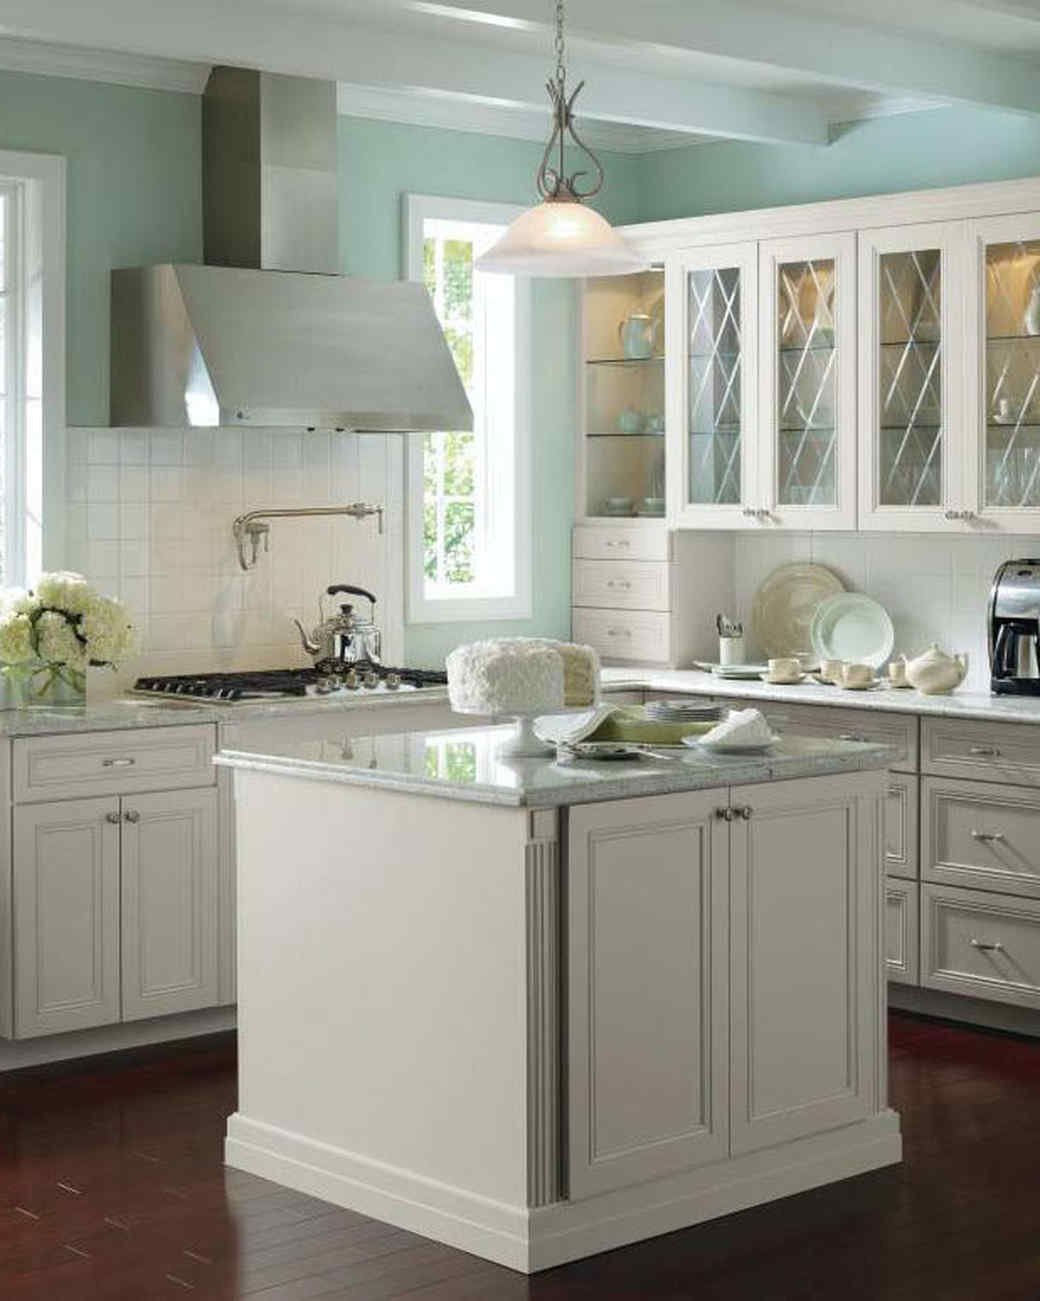 Wide Corian Countertop And Kitchen Size Sink